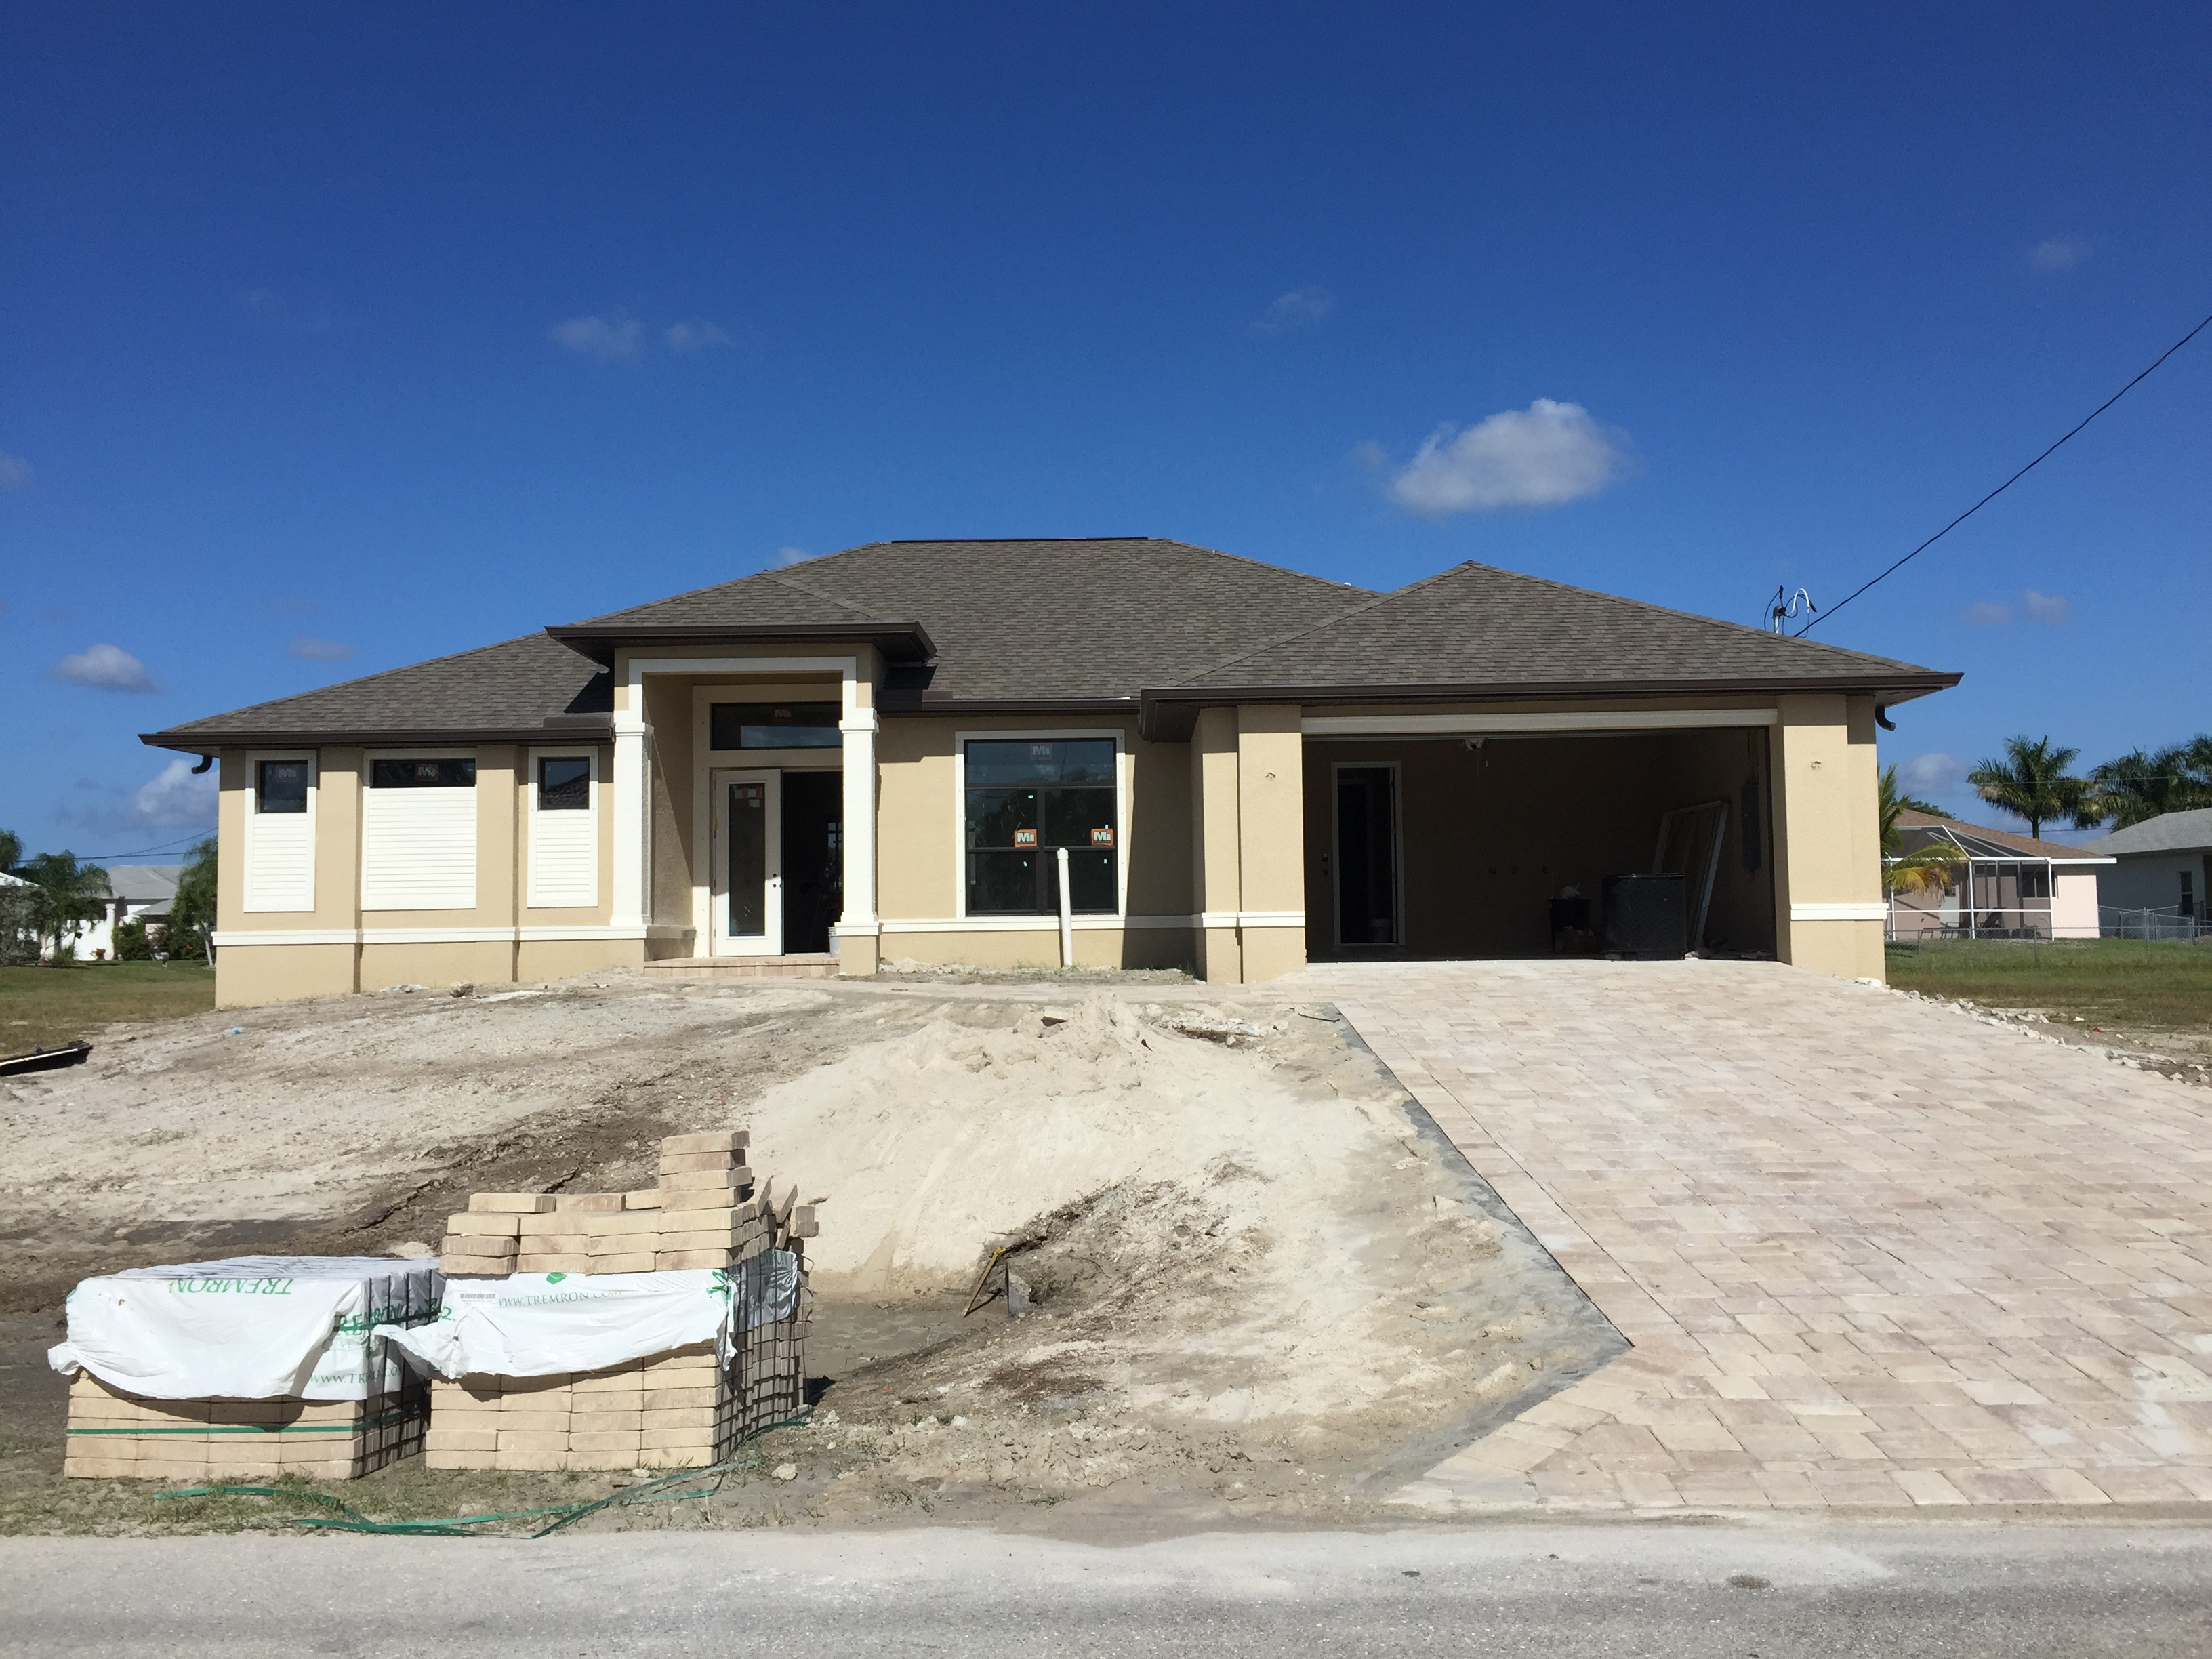 New homes for sale in cape coral fl for Houses for sale with pictures